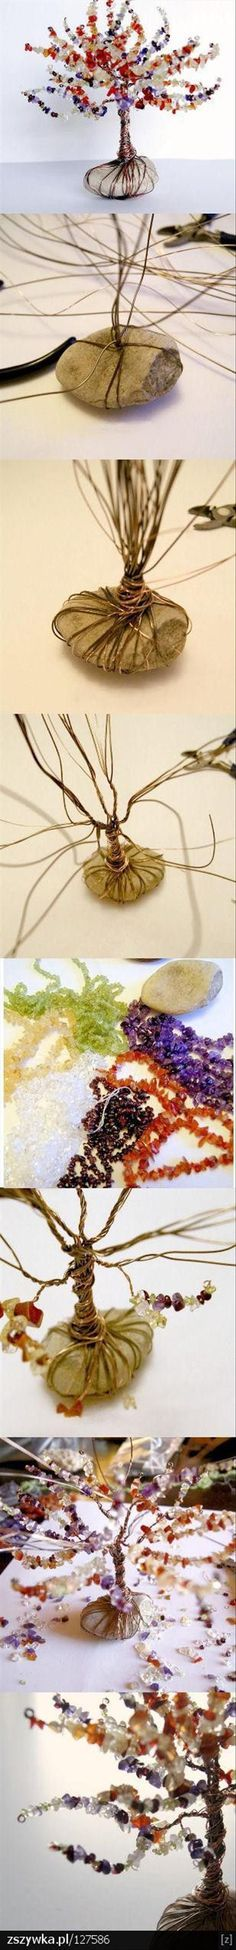 """DIY beads: DIY beads and wire tree ~ wrap a big """"stone"""" with """"wire"""" and add … - Art Decoration Diy Projects To Try, Crafts To Do, Craft Projects, Arts And Crafts, Craft Ideas, Diy Ideas, Easy Crafts, Decor Ideas, Cool Crafts"""